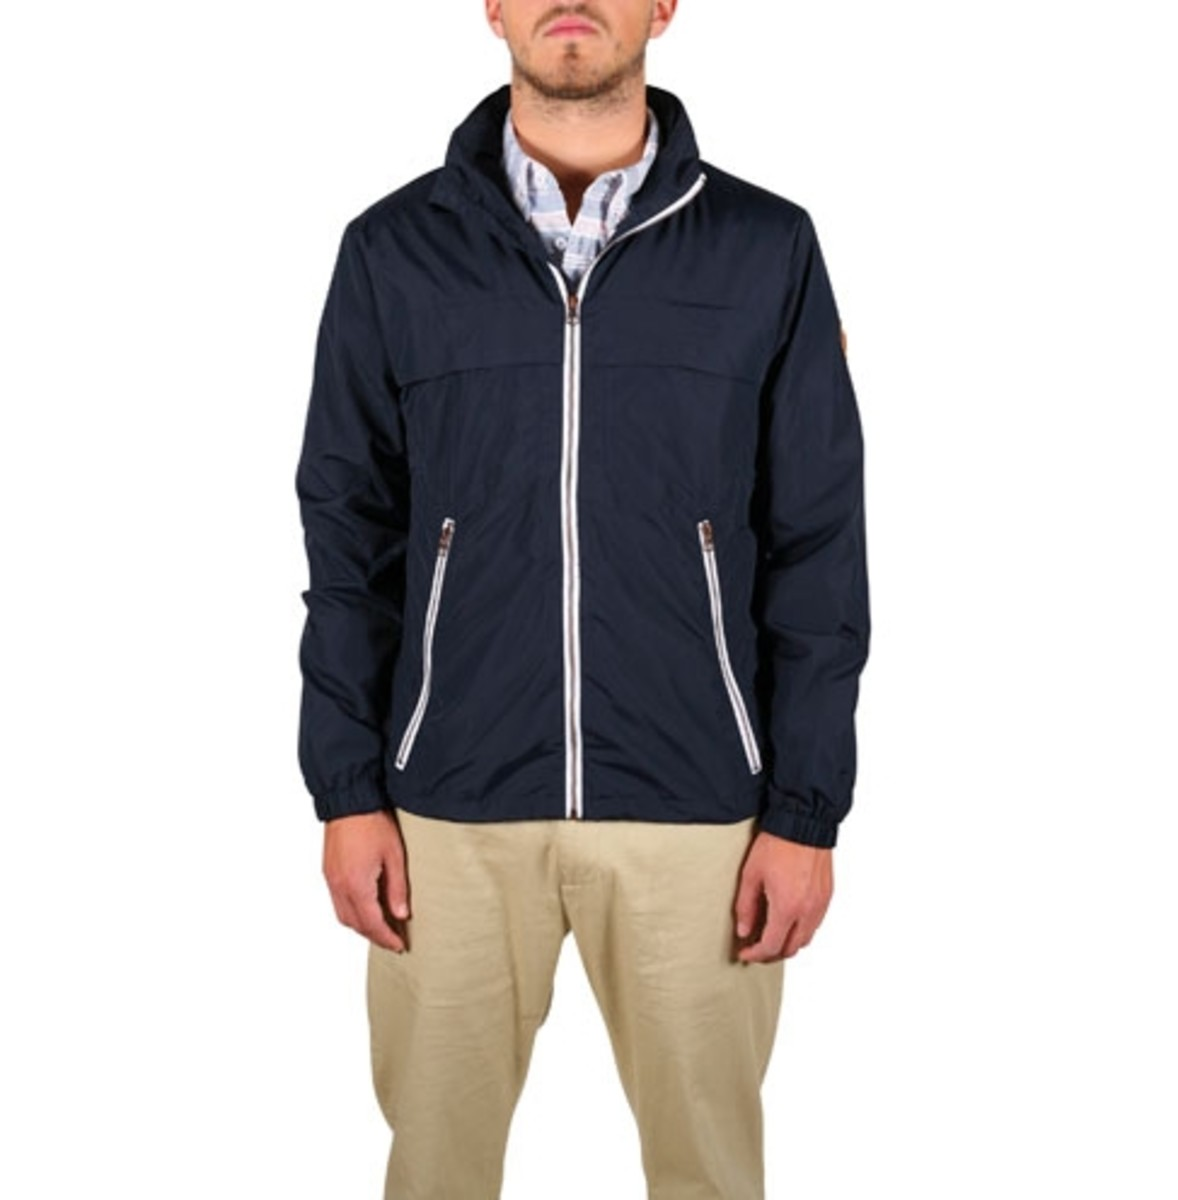 Penfield SS2011 Jackets 41